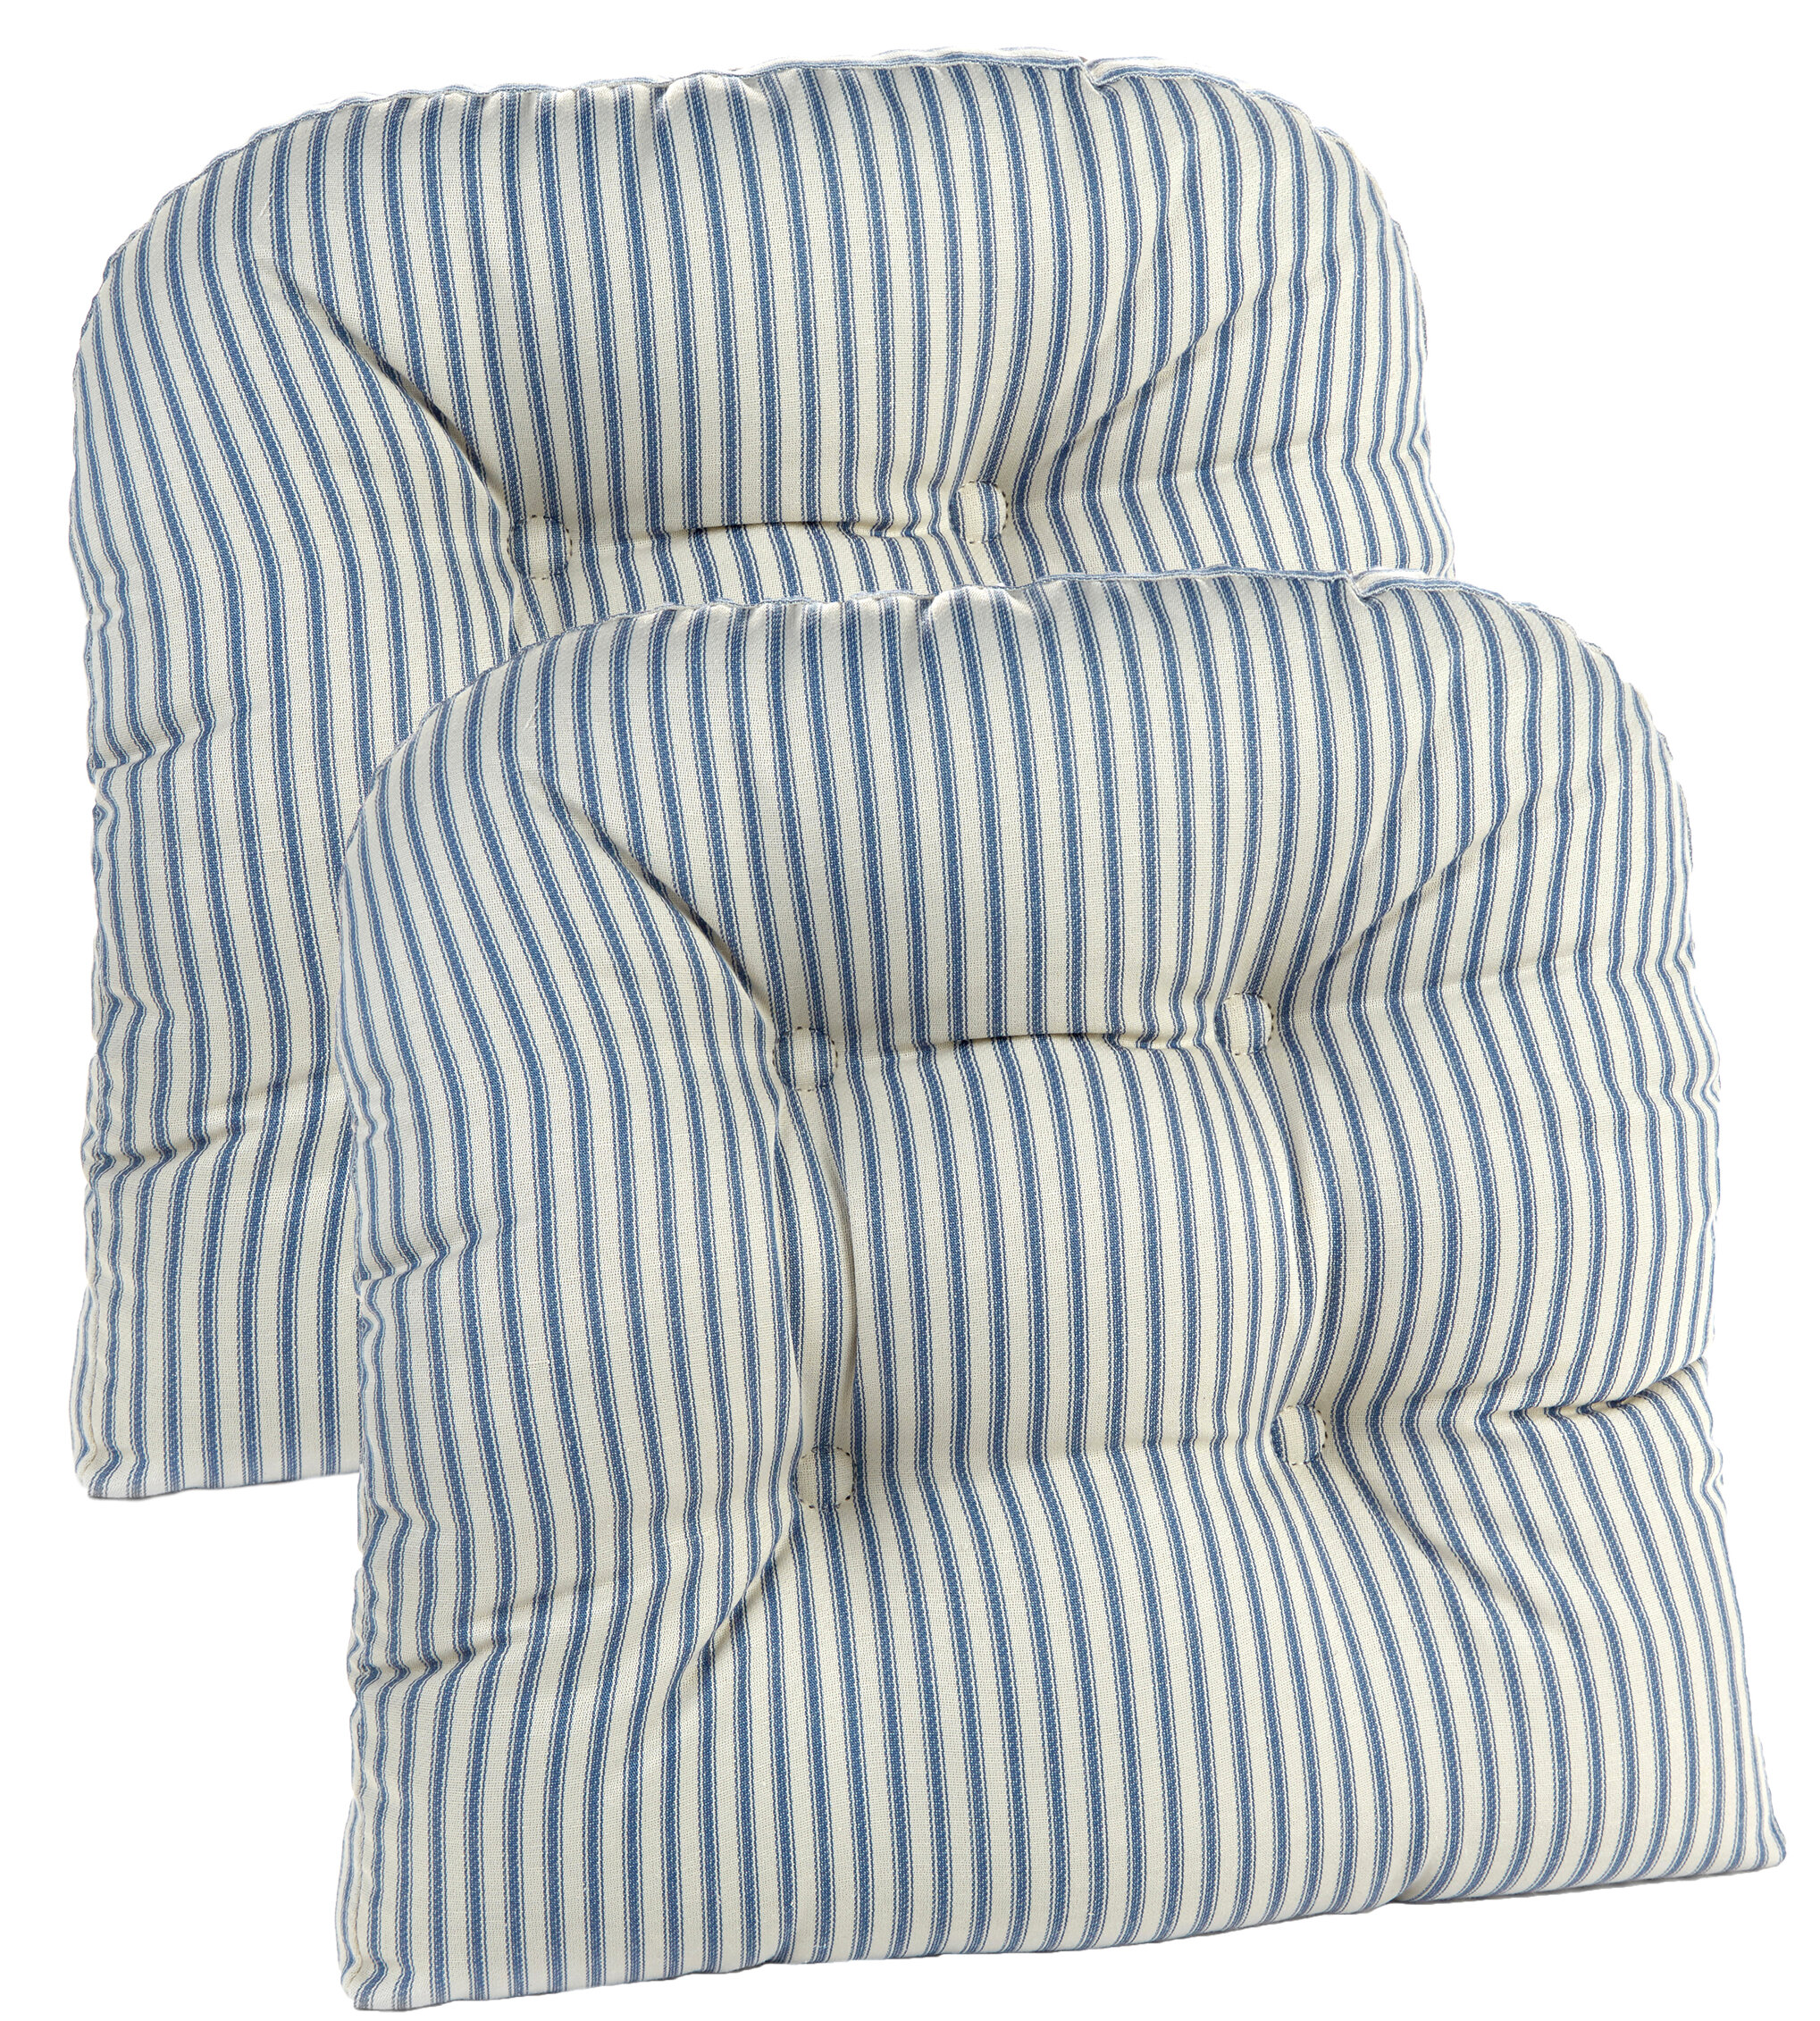 Klear Vu Gripper Universal Dining Chair Cushion & Reviews | Wayfair